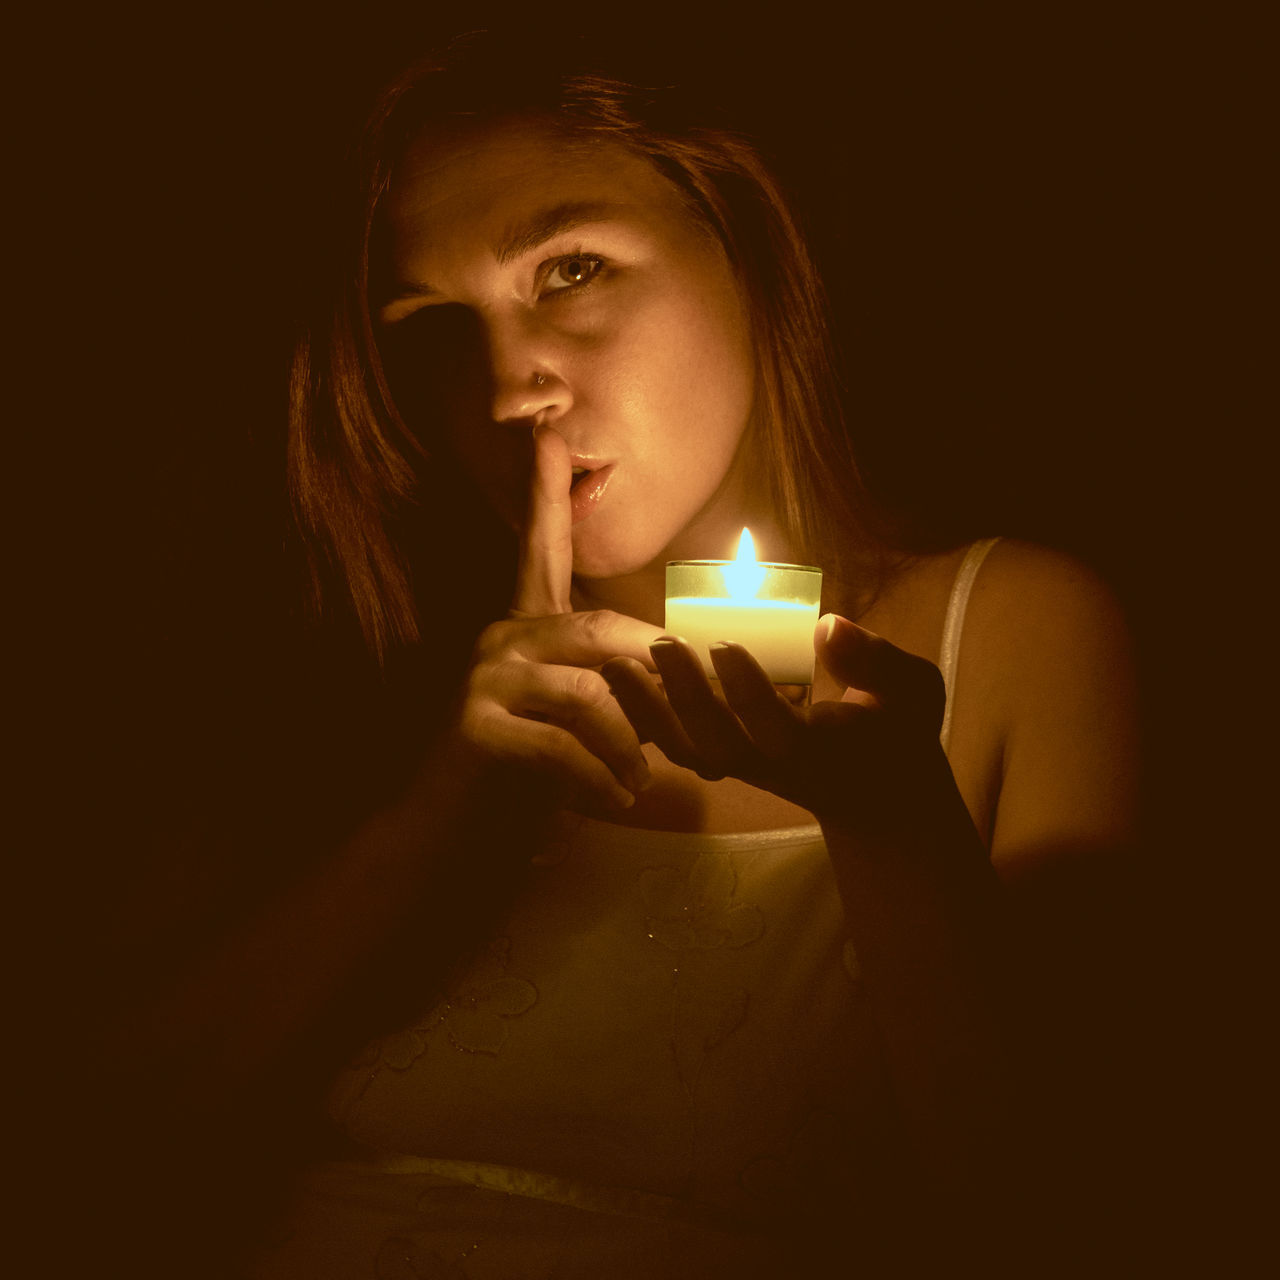 Black Background Candle Candle Light Dark Female Finger To Lips Flame Flowers Glowing Holding Candles Illuminated Looking At Camera Mysterious Night One Person Person Portrait Secretive Secrets Shhh Upper Body Woman